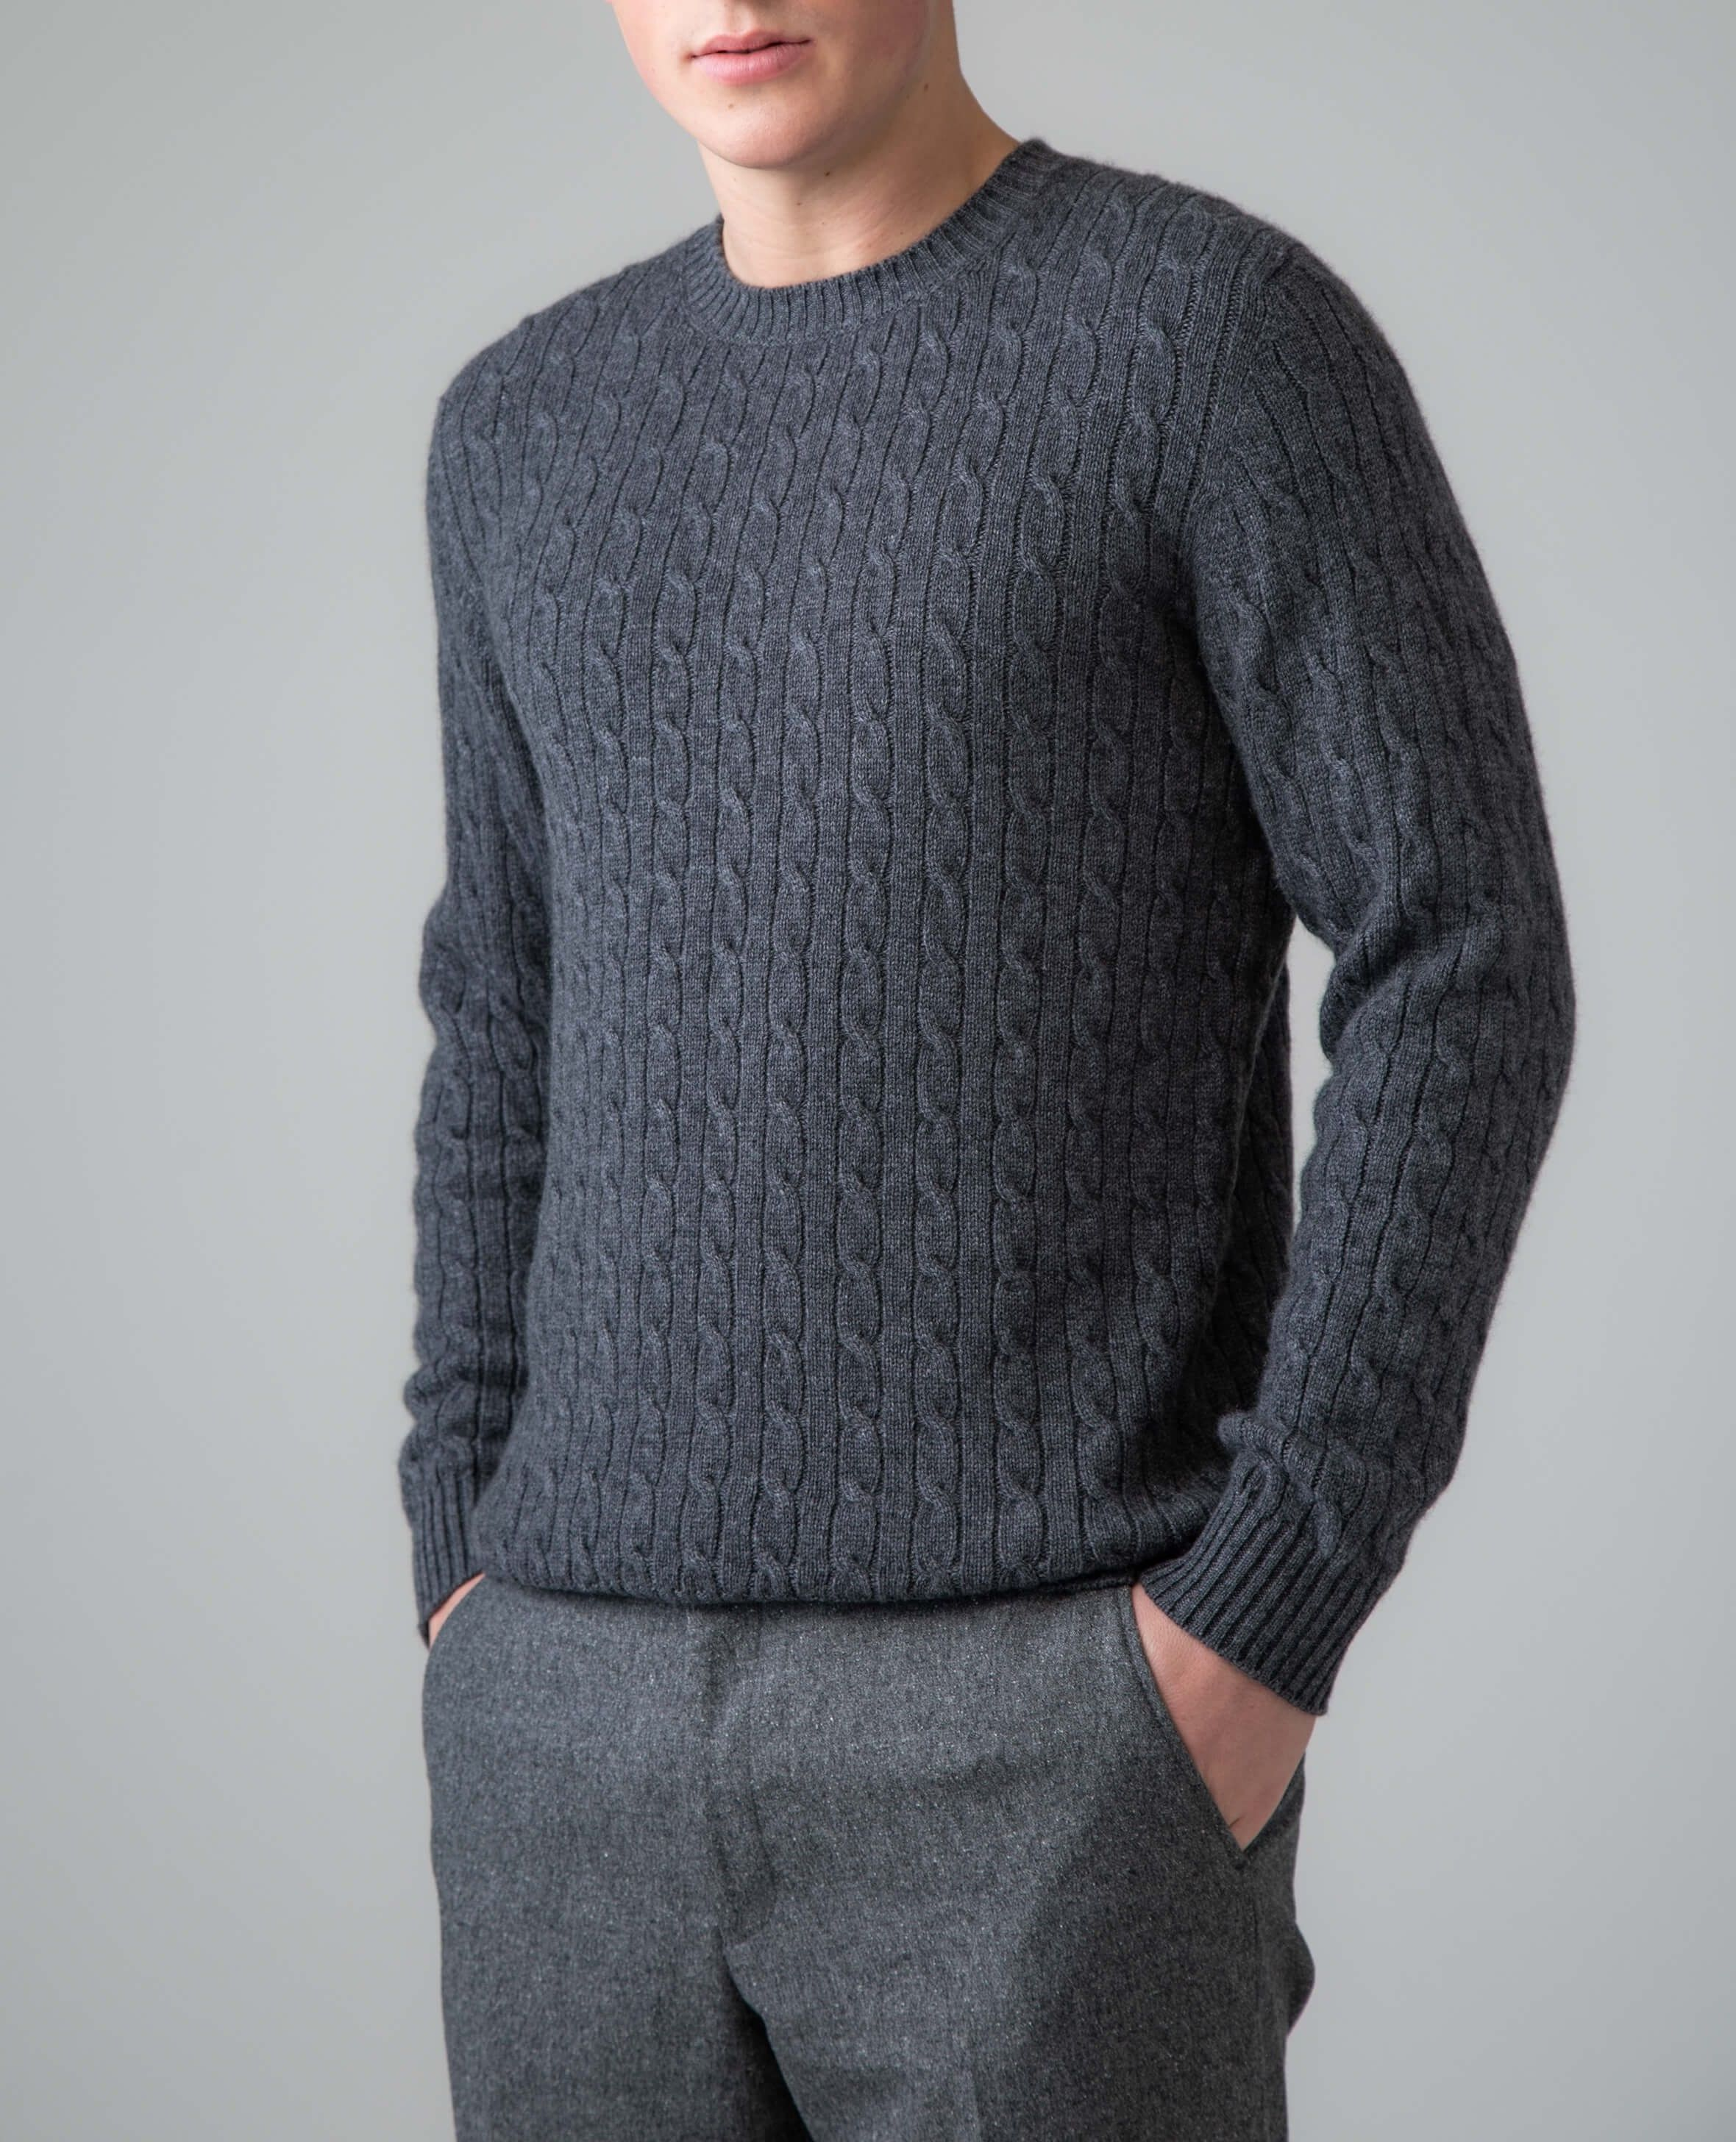 1ebbd42d5b104c A modern classic for your wardrobe, discover our Granite Grey Cable & Rib  Men's Cashmere Jumpers at Johnstons of Elgin.